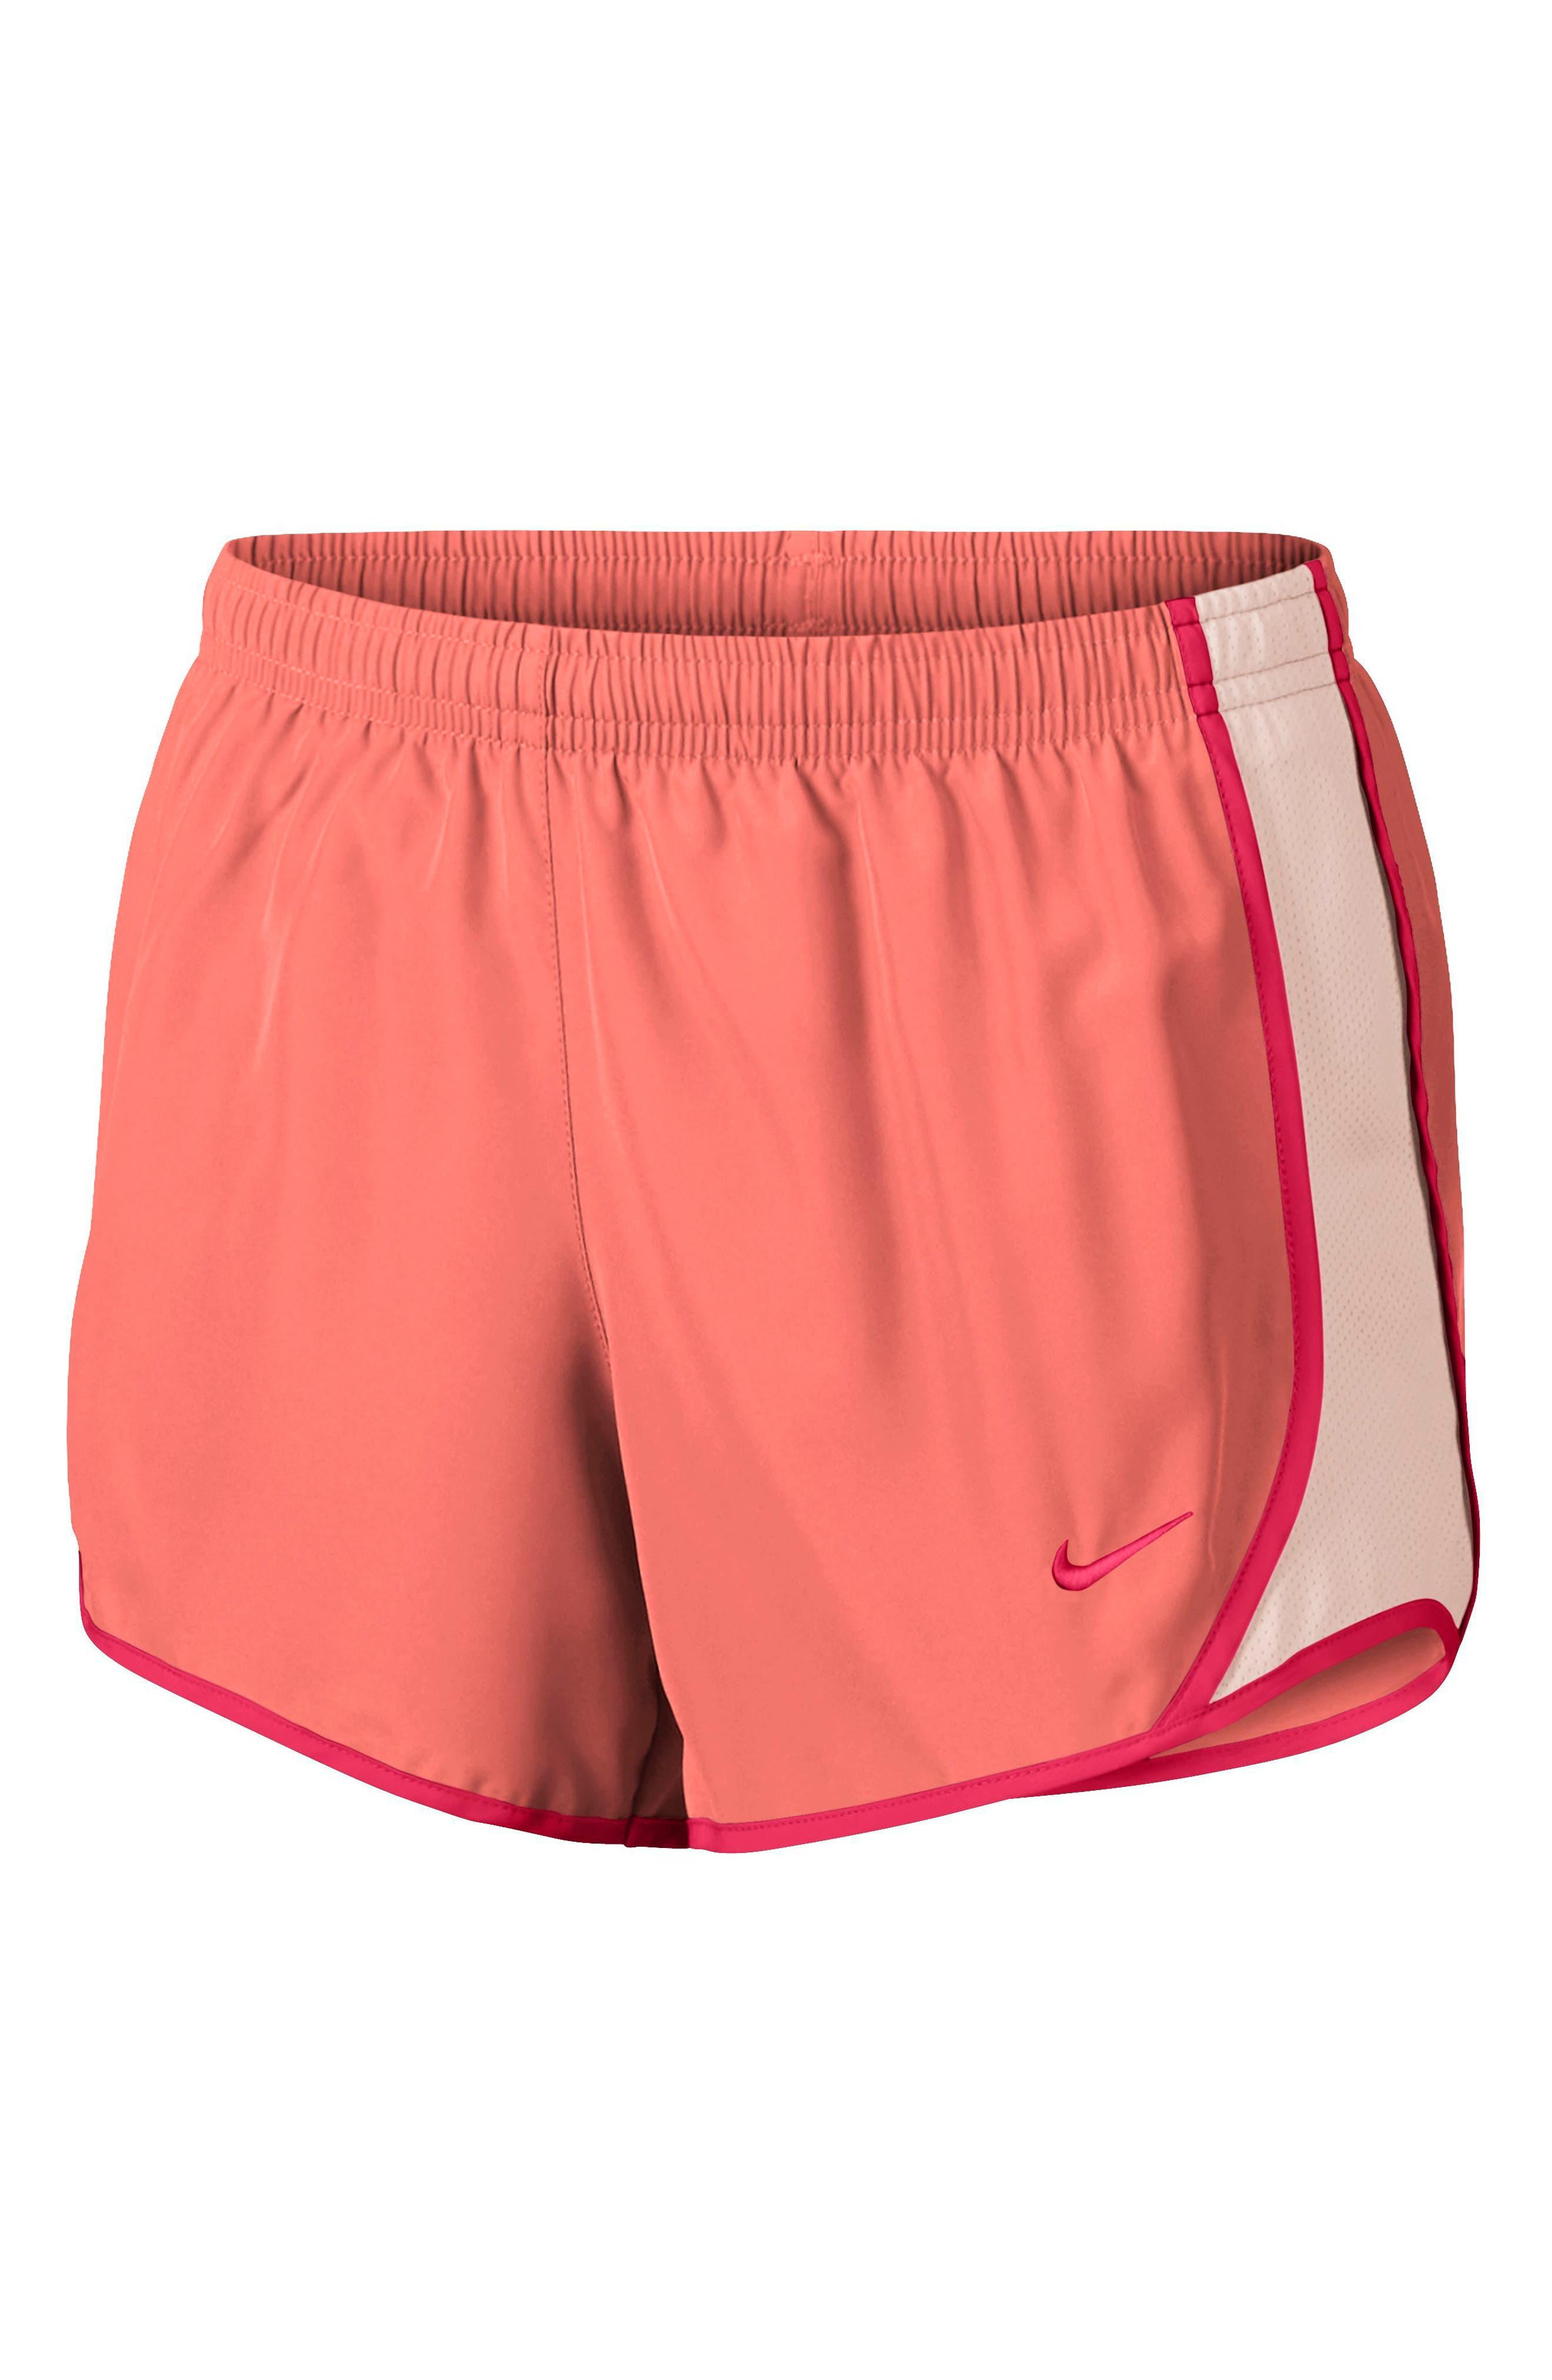 Kids' Nike Orange Clothing, Shoes & Accessories 30 & Under Nordstrom